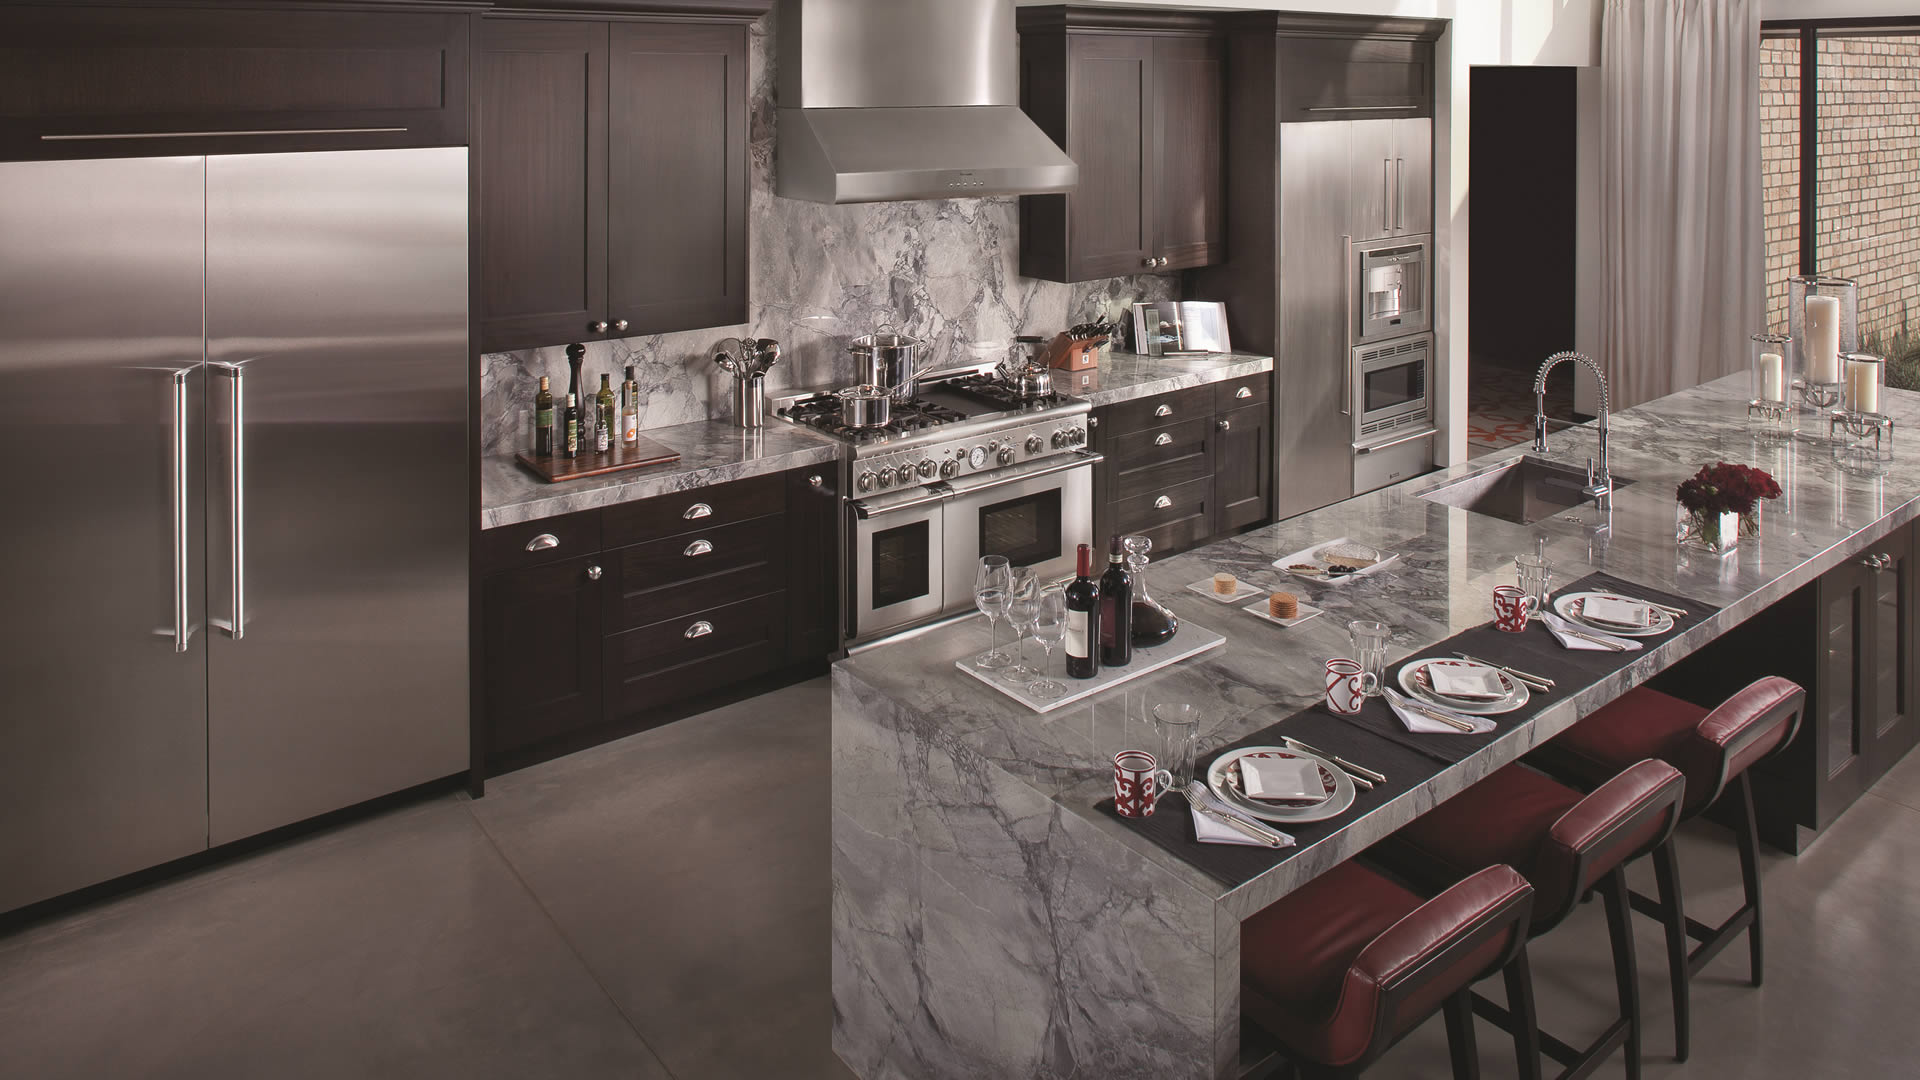 Genial Thermador. Appliances